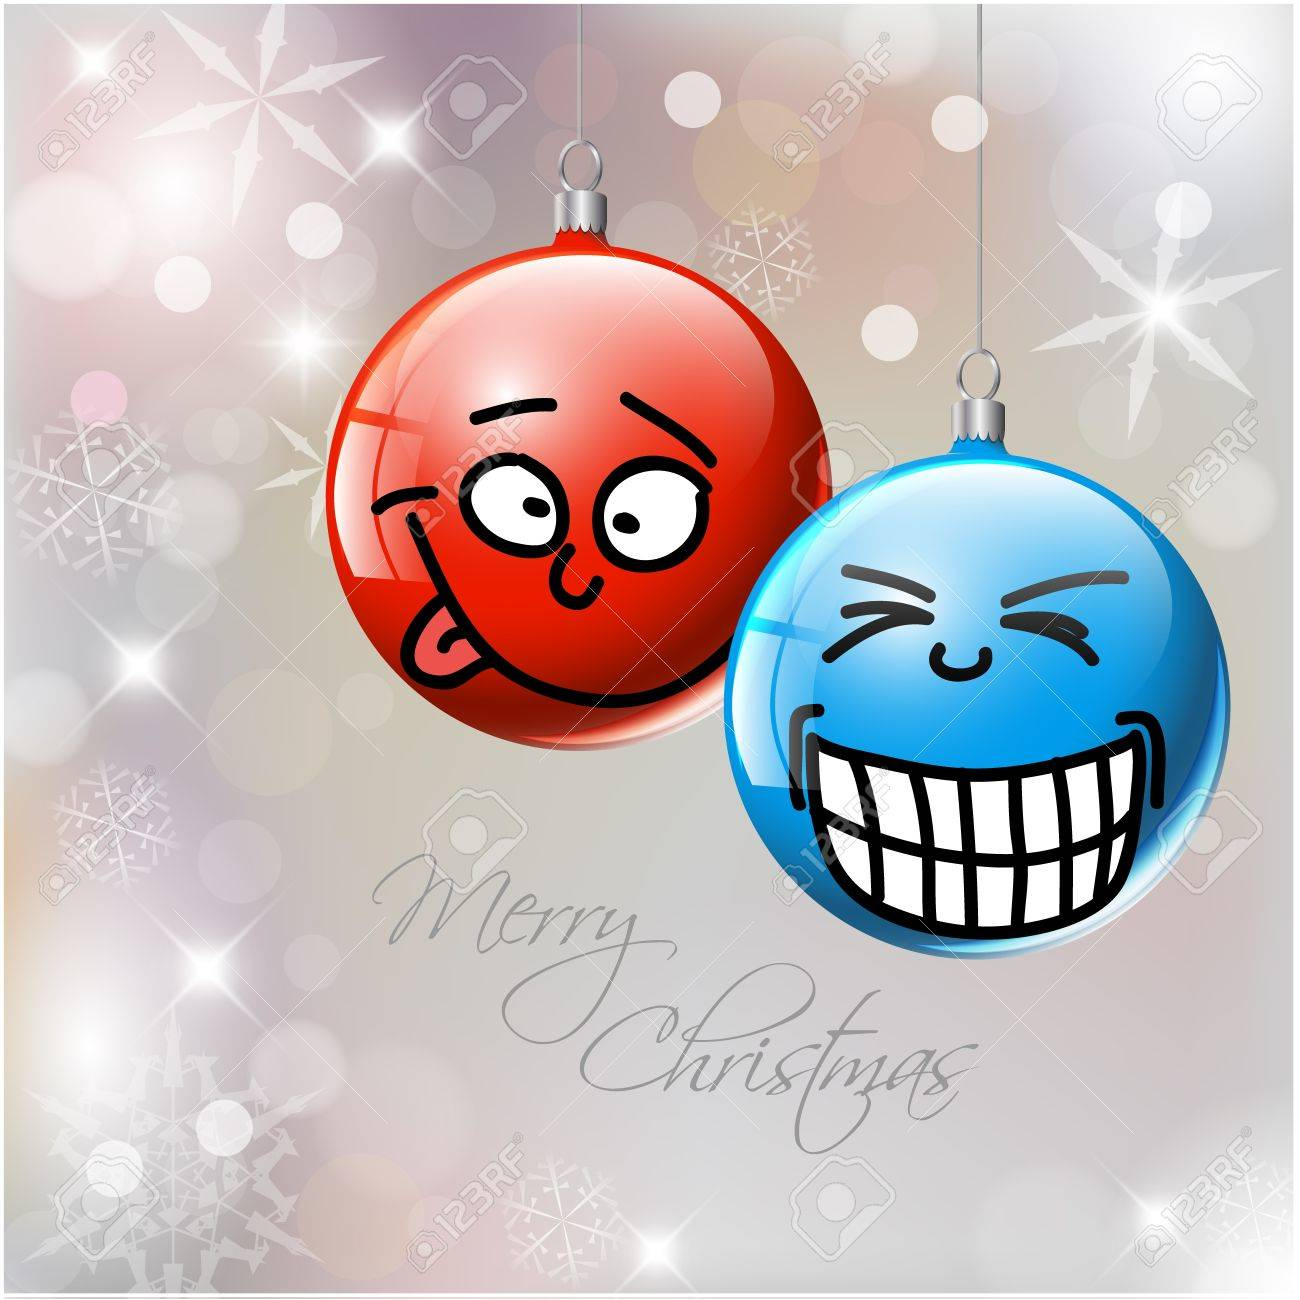 Witzige Christbaumkugeln.Funny Blue And Red Christmas Baubles With Faces